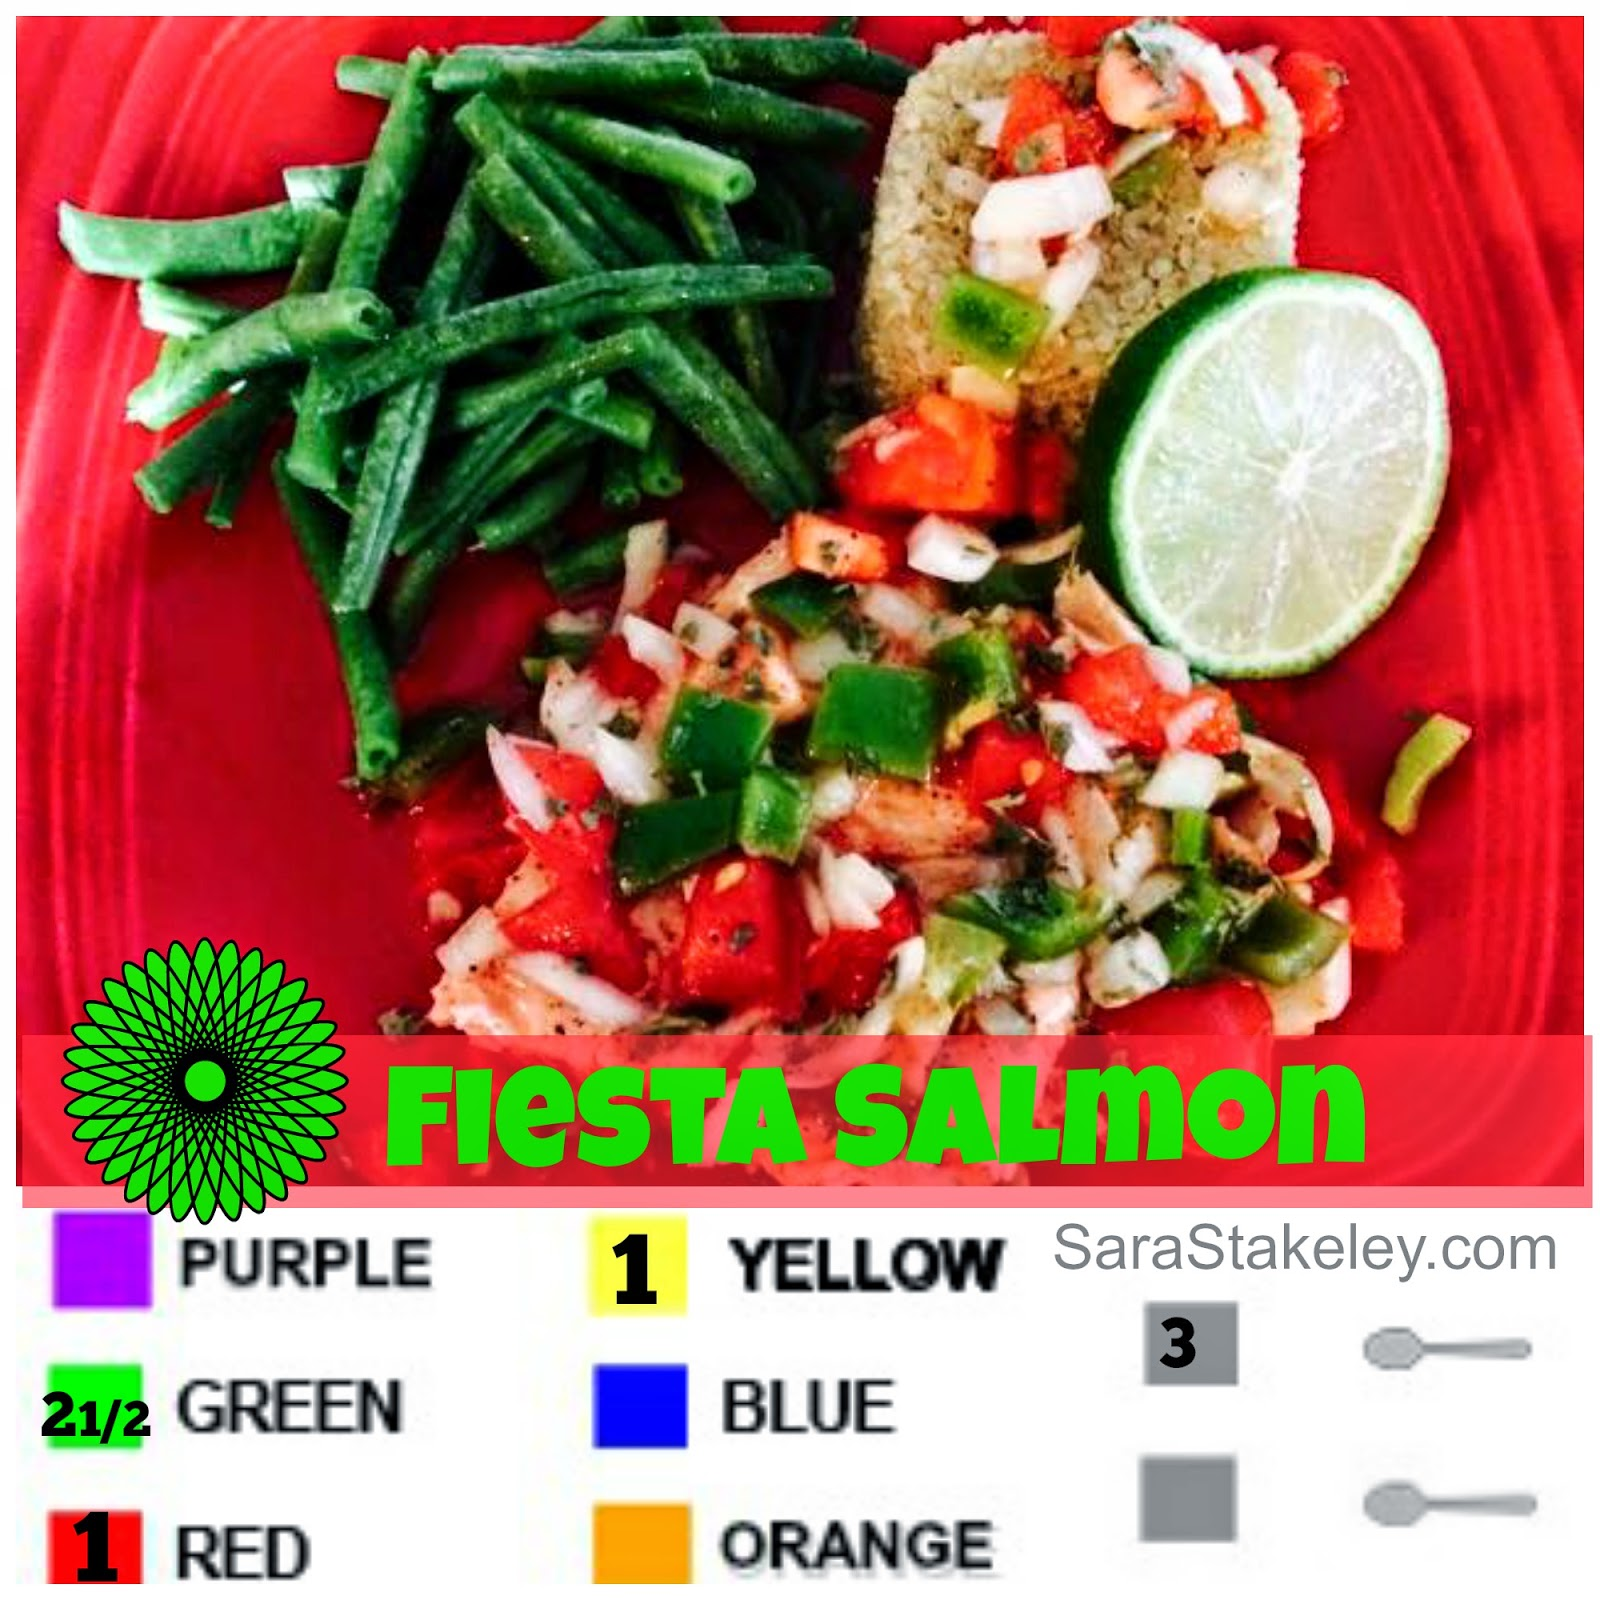 21 day day fix dinner, 21 day fix salmon, Fiesta Salmon, Sarastakeley.com, Clean eating, quinoa, Salsa, easy meals,